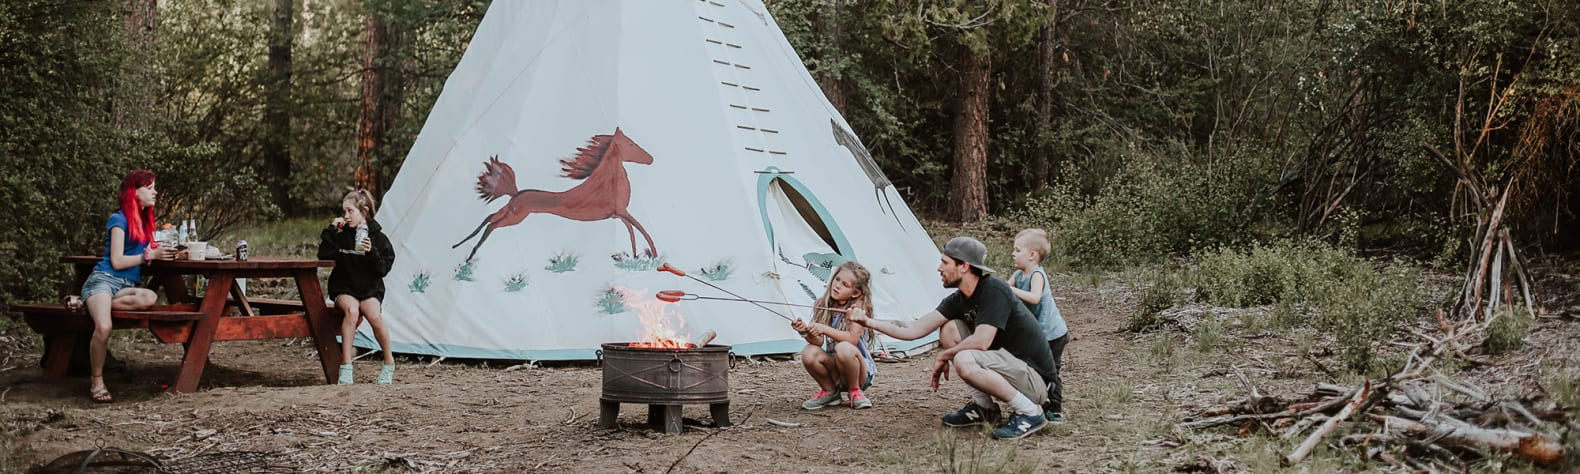 Heartline Ranch and Tipi Camp